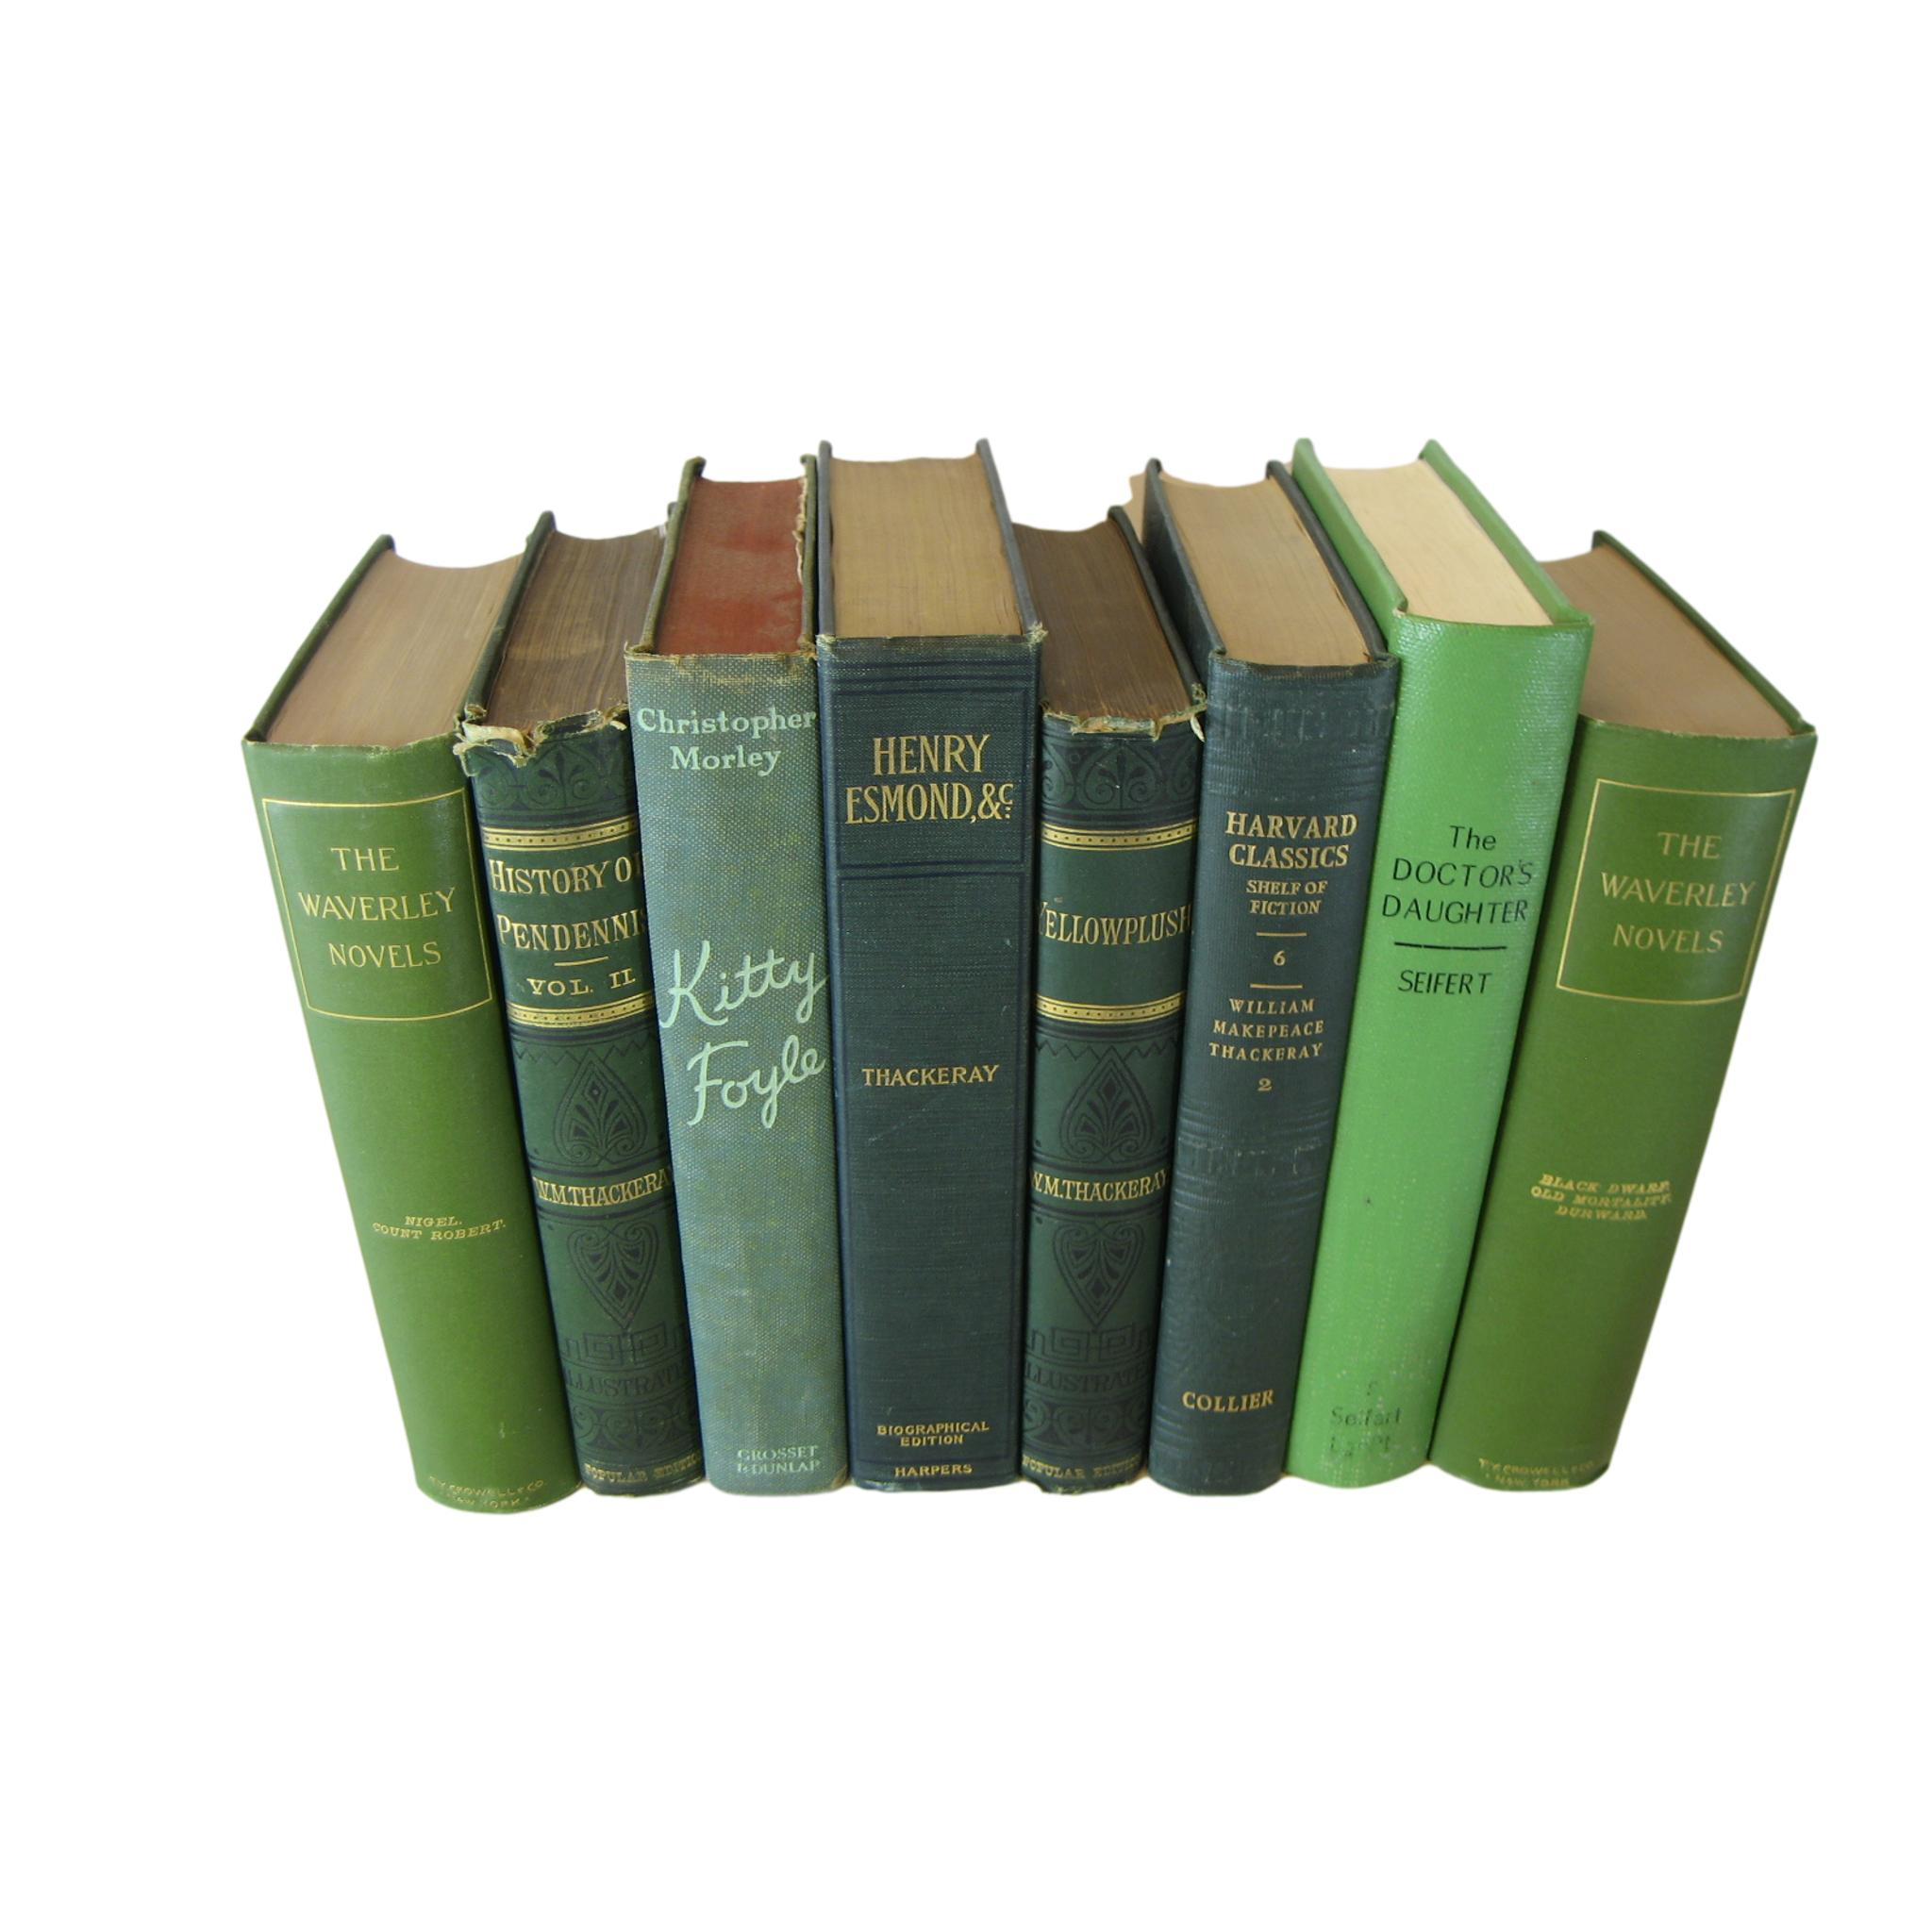 Decorative Book Set of One Foot in Green, S/8 - Decades of Vintage